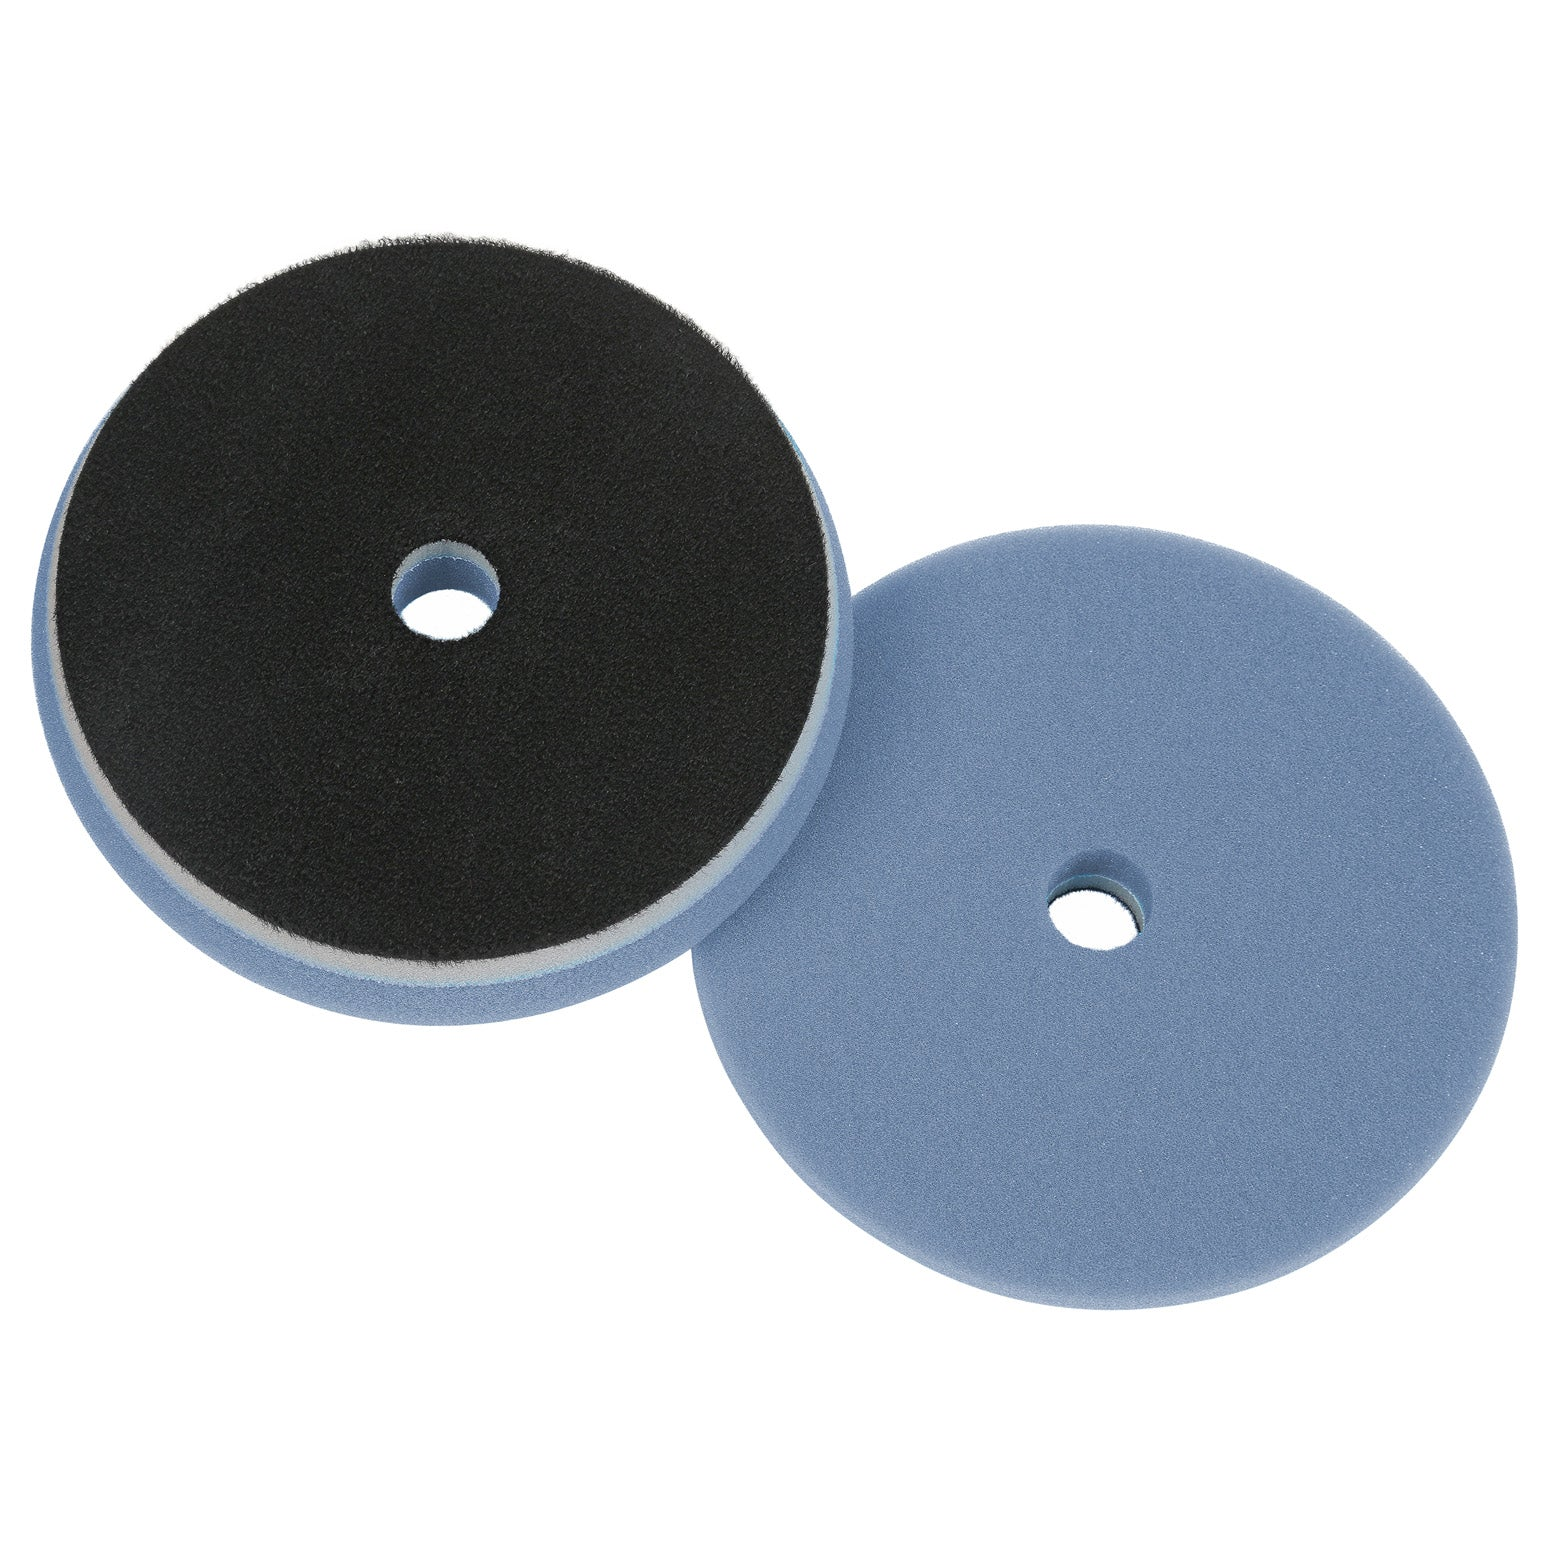 Lake Country Heavy Duty Orbital Pad - Blue (Heavy Polishing) (4390809239601)